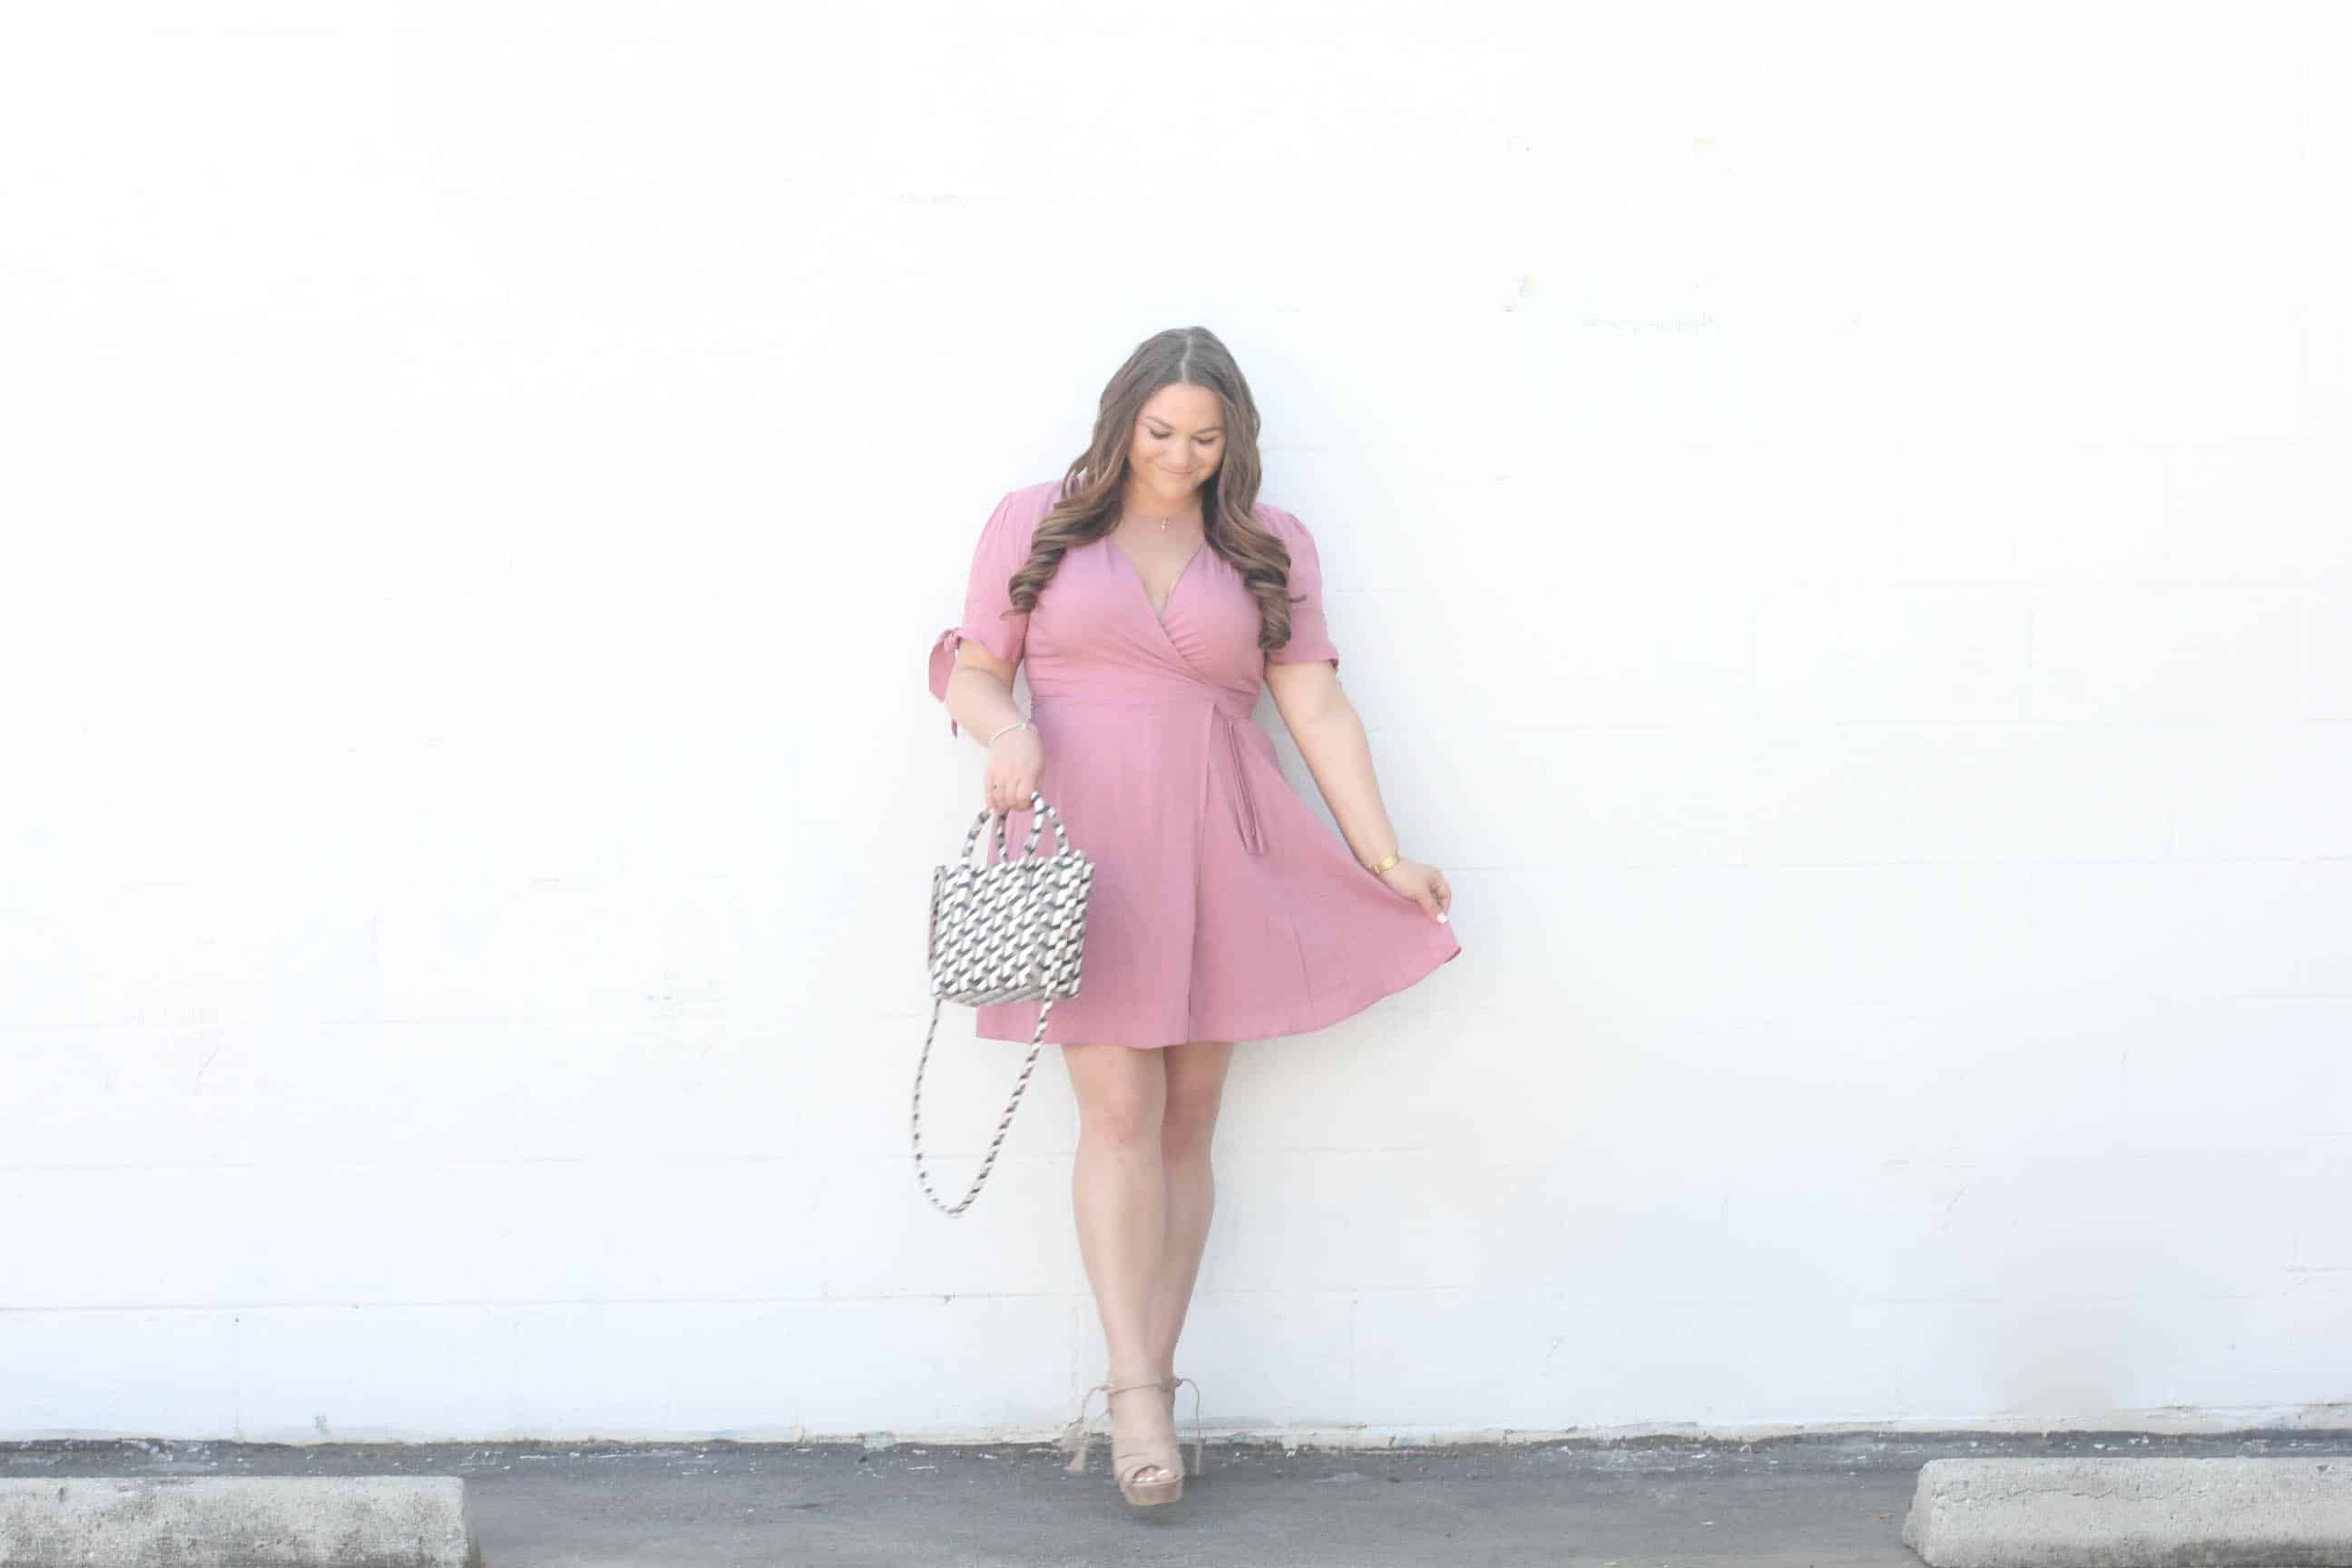 missyonmadison, missy on madison instagram, missyonmadison instagram, fashion blog, fashion blogger, outfit inspo, spring style, seven dials heels, dagne dover, dagne dover satchel, wild blue denim, wild blue denim dress, blush dress, blush wrap dress, style blogger, spring style guide, hair extensions, keratin hair extensions, ootd, la blogger, la style, nude lace up heels,